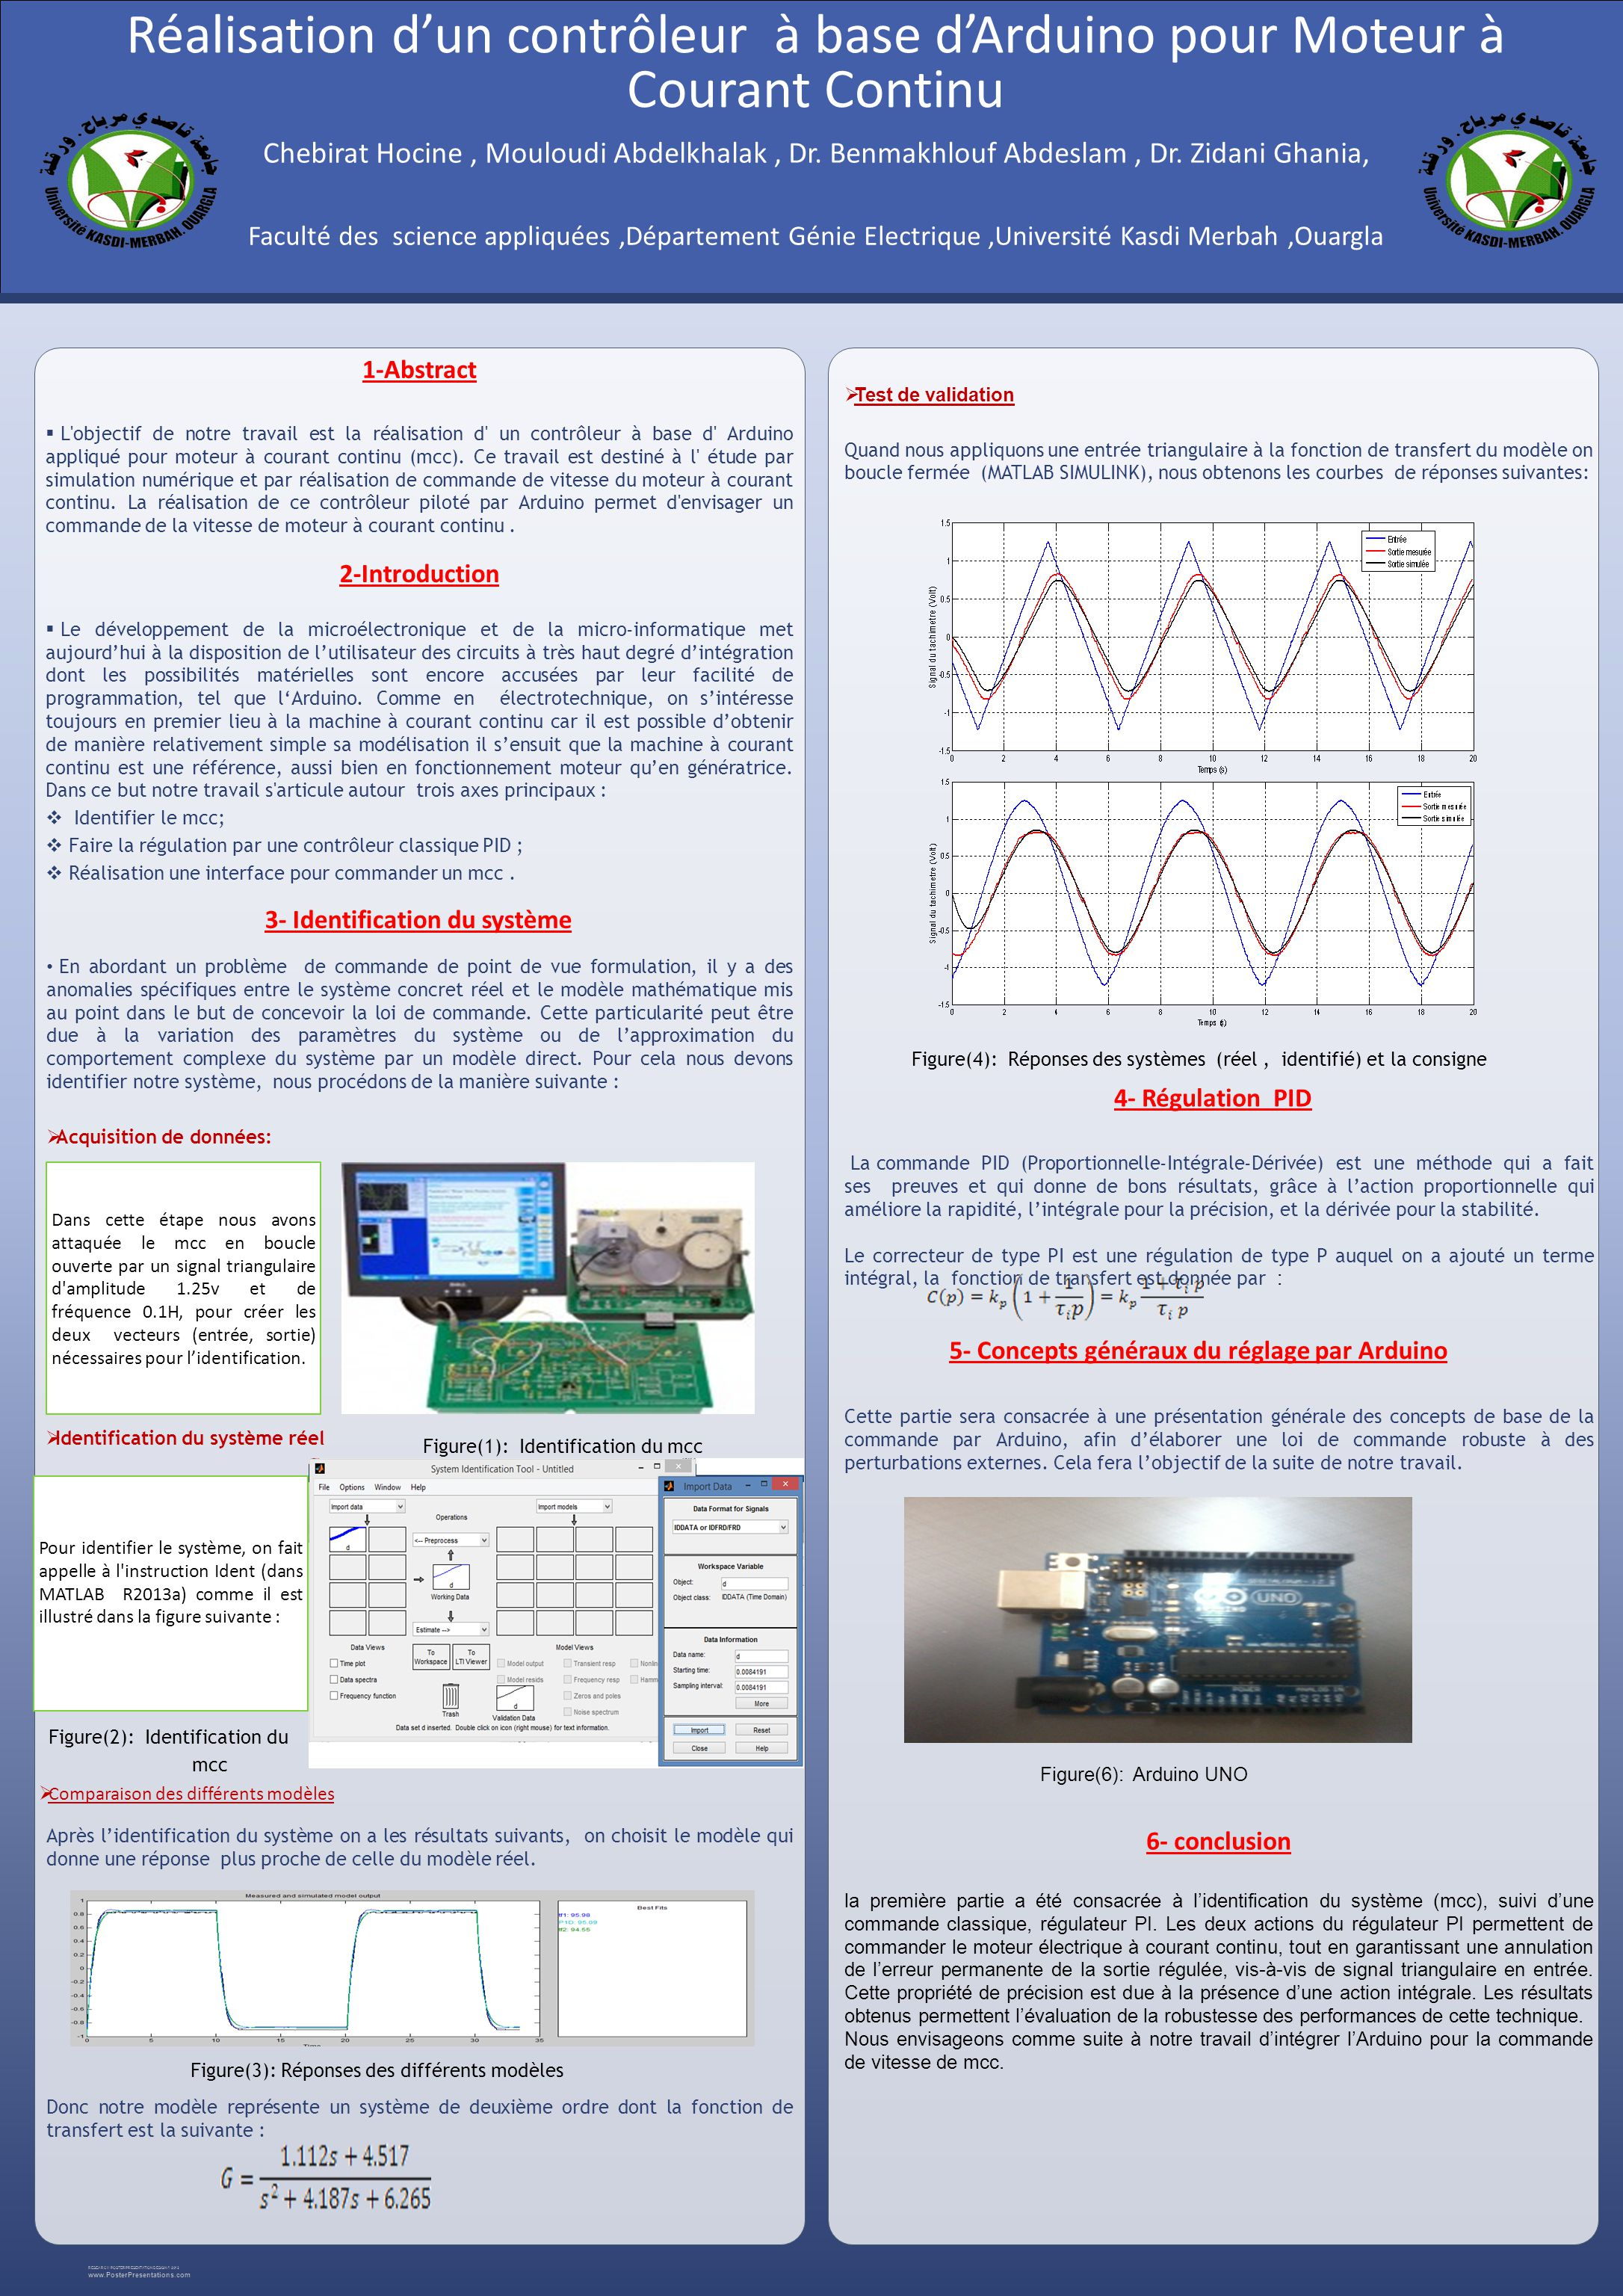 Poster design on powerpoint - Research Poster Presentation Design 2012 Www Posterpresentations Com This Sidebar Does